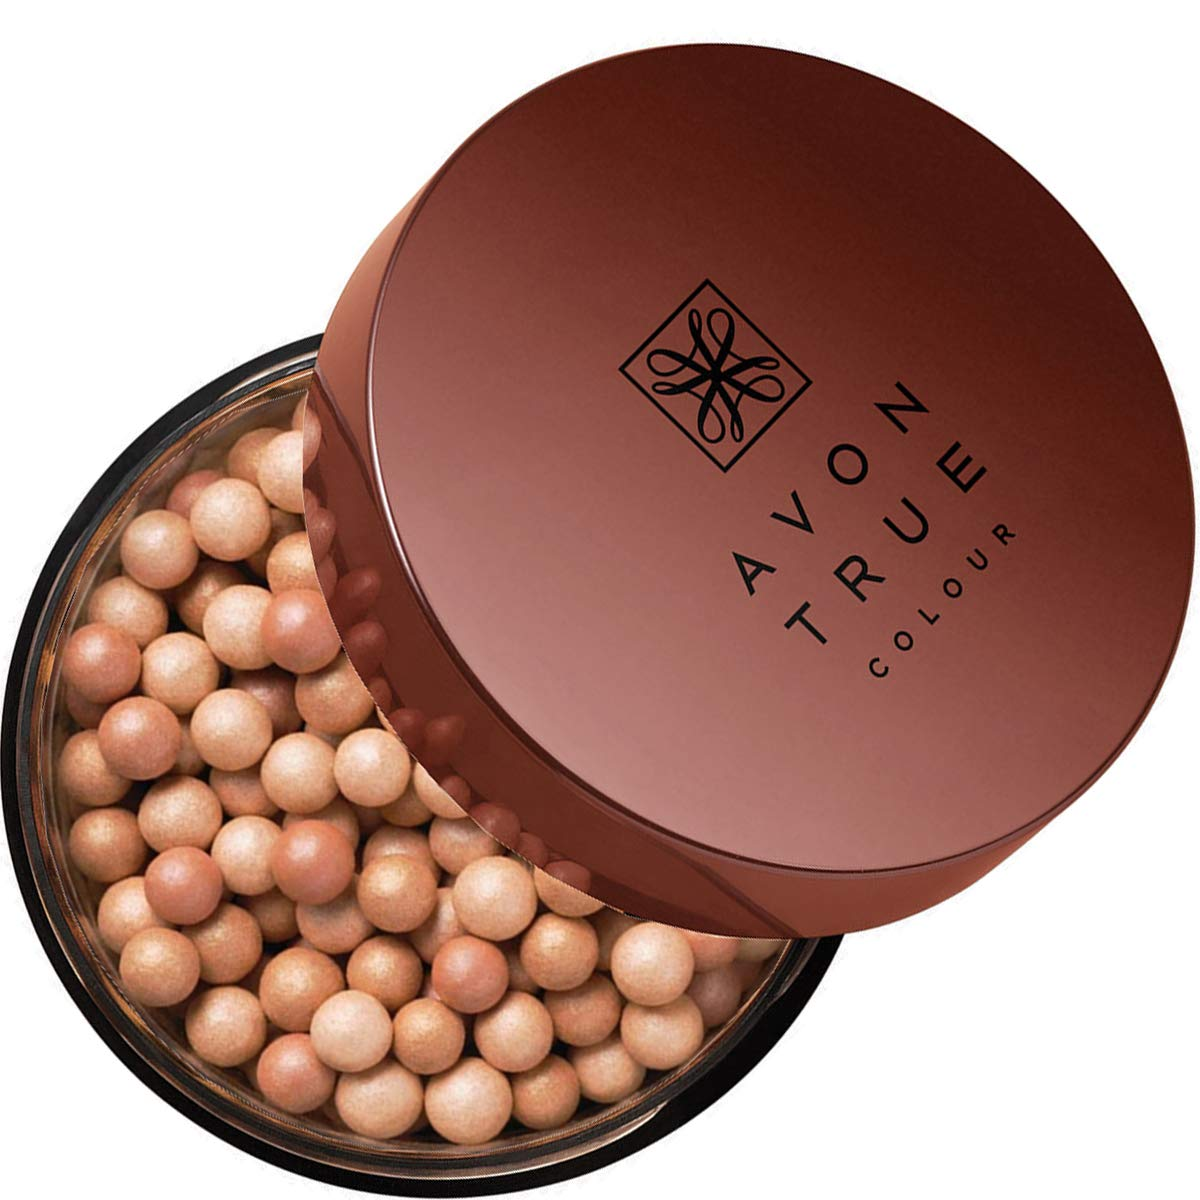 Avon True Glow Bronzing Pearls - Medium Tan